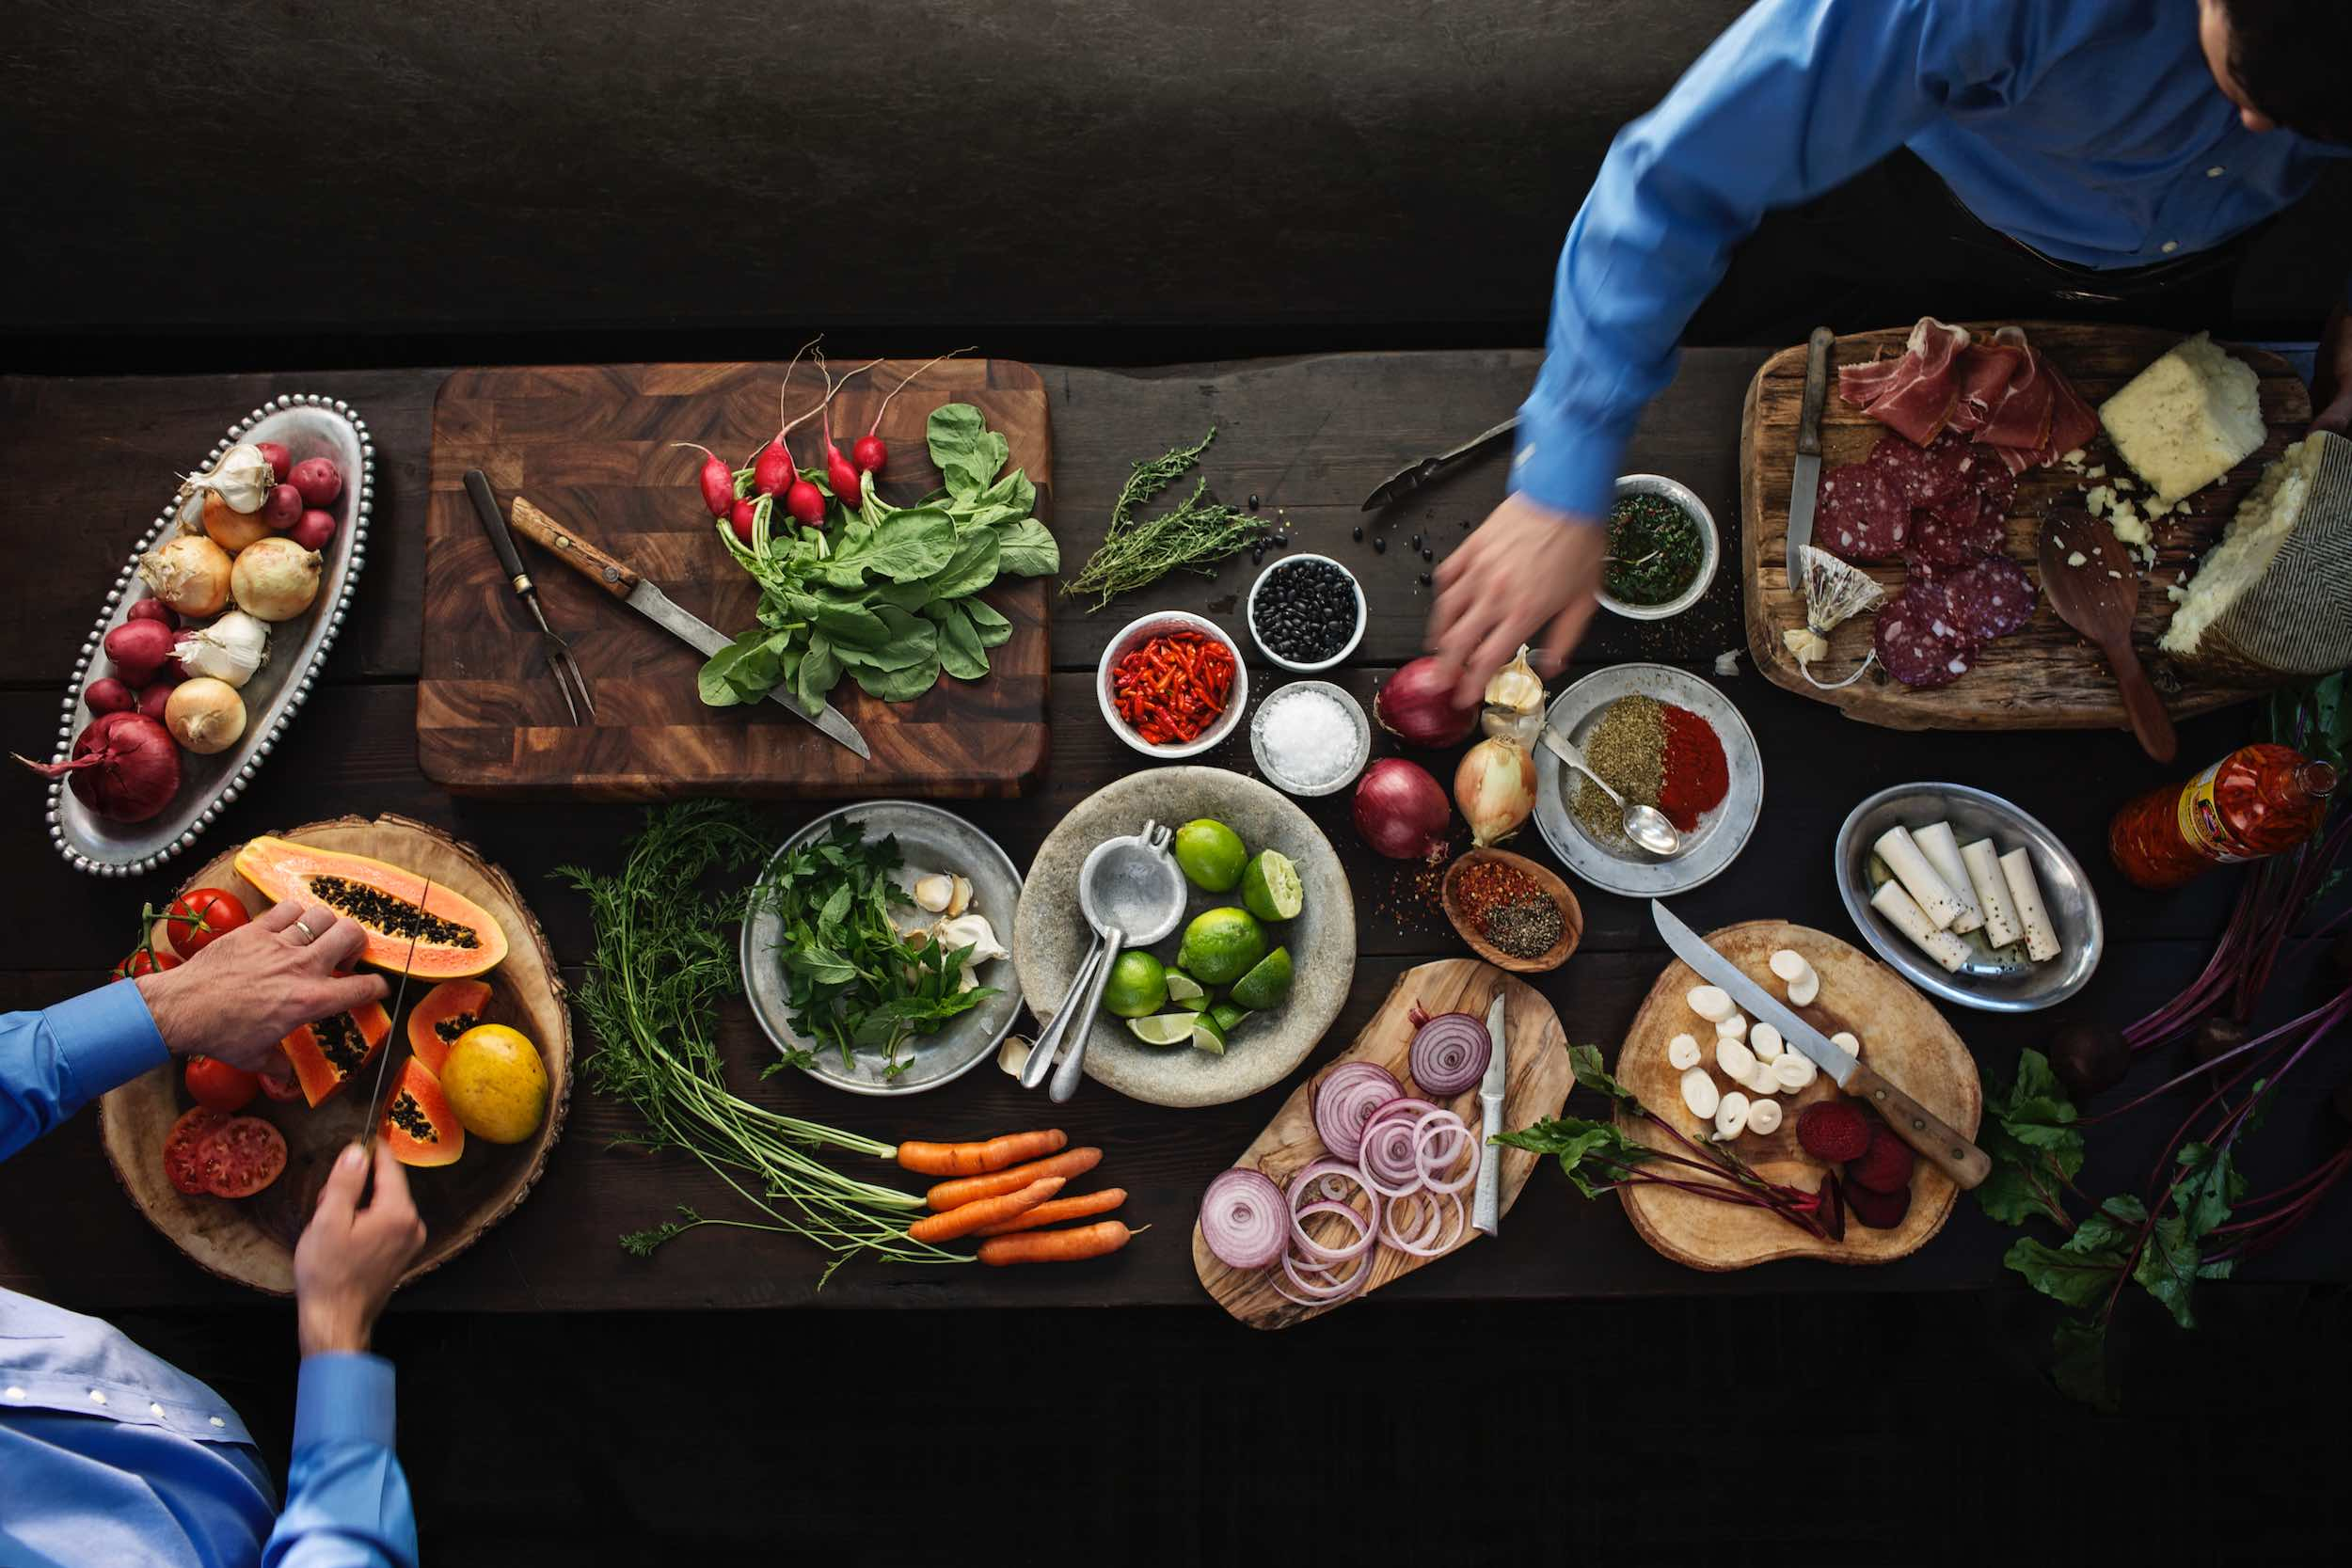 Jody Horton Photography - Cooks prepare ingredients on long wood table.